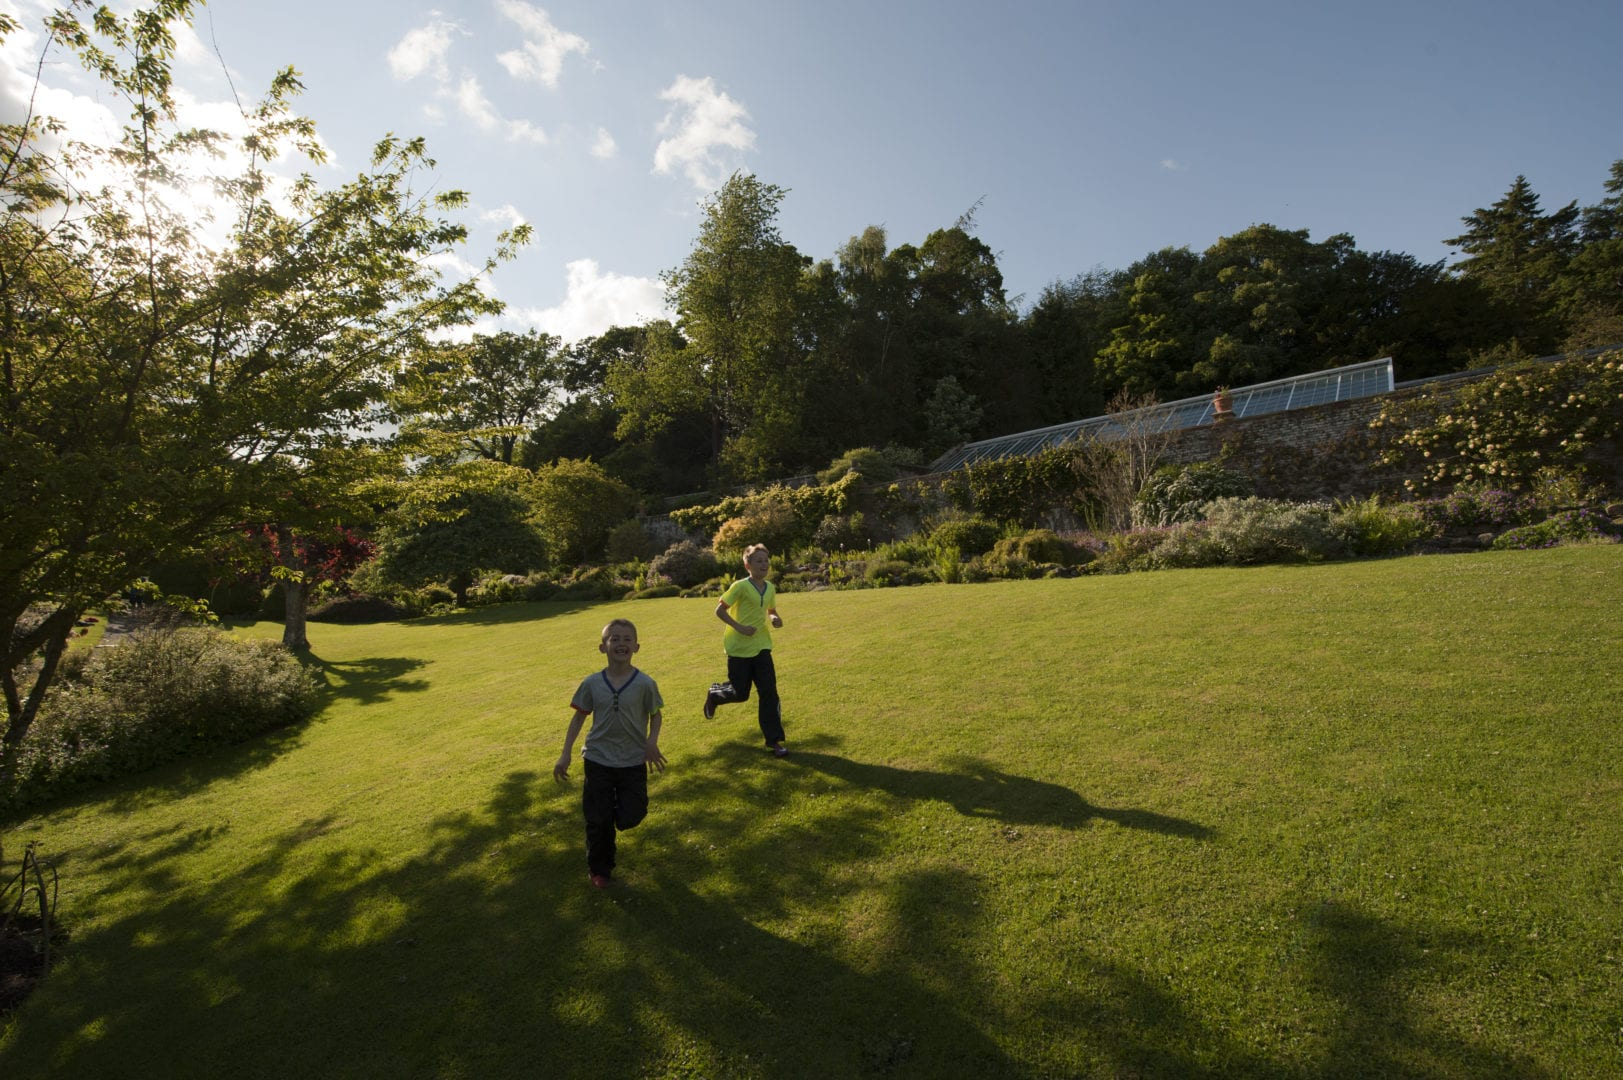 Children playing in the garden at Wallington Bunkhouse, Northumberland.